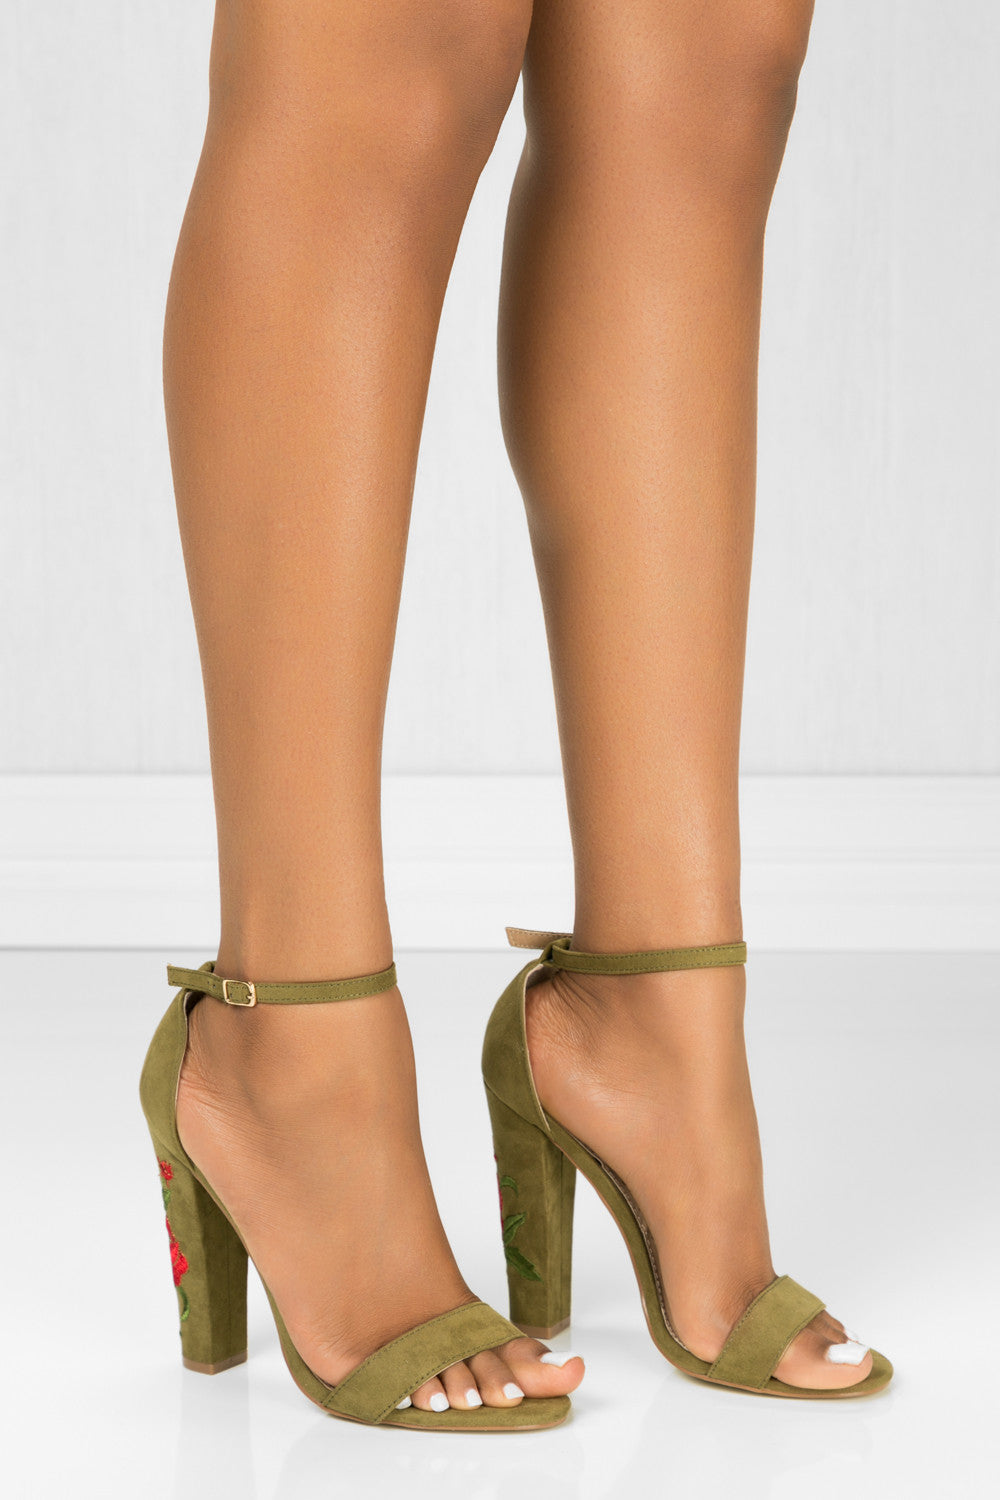 Hazel Chunky Embroidery Olive High Heels by BlaMer Shoes